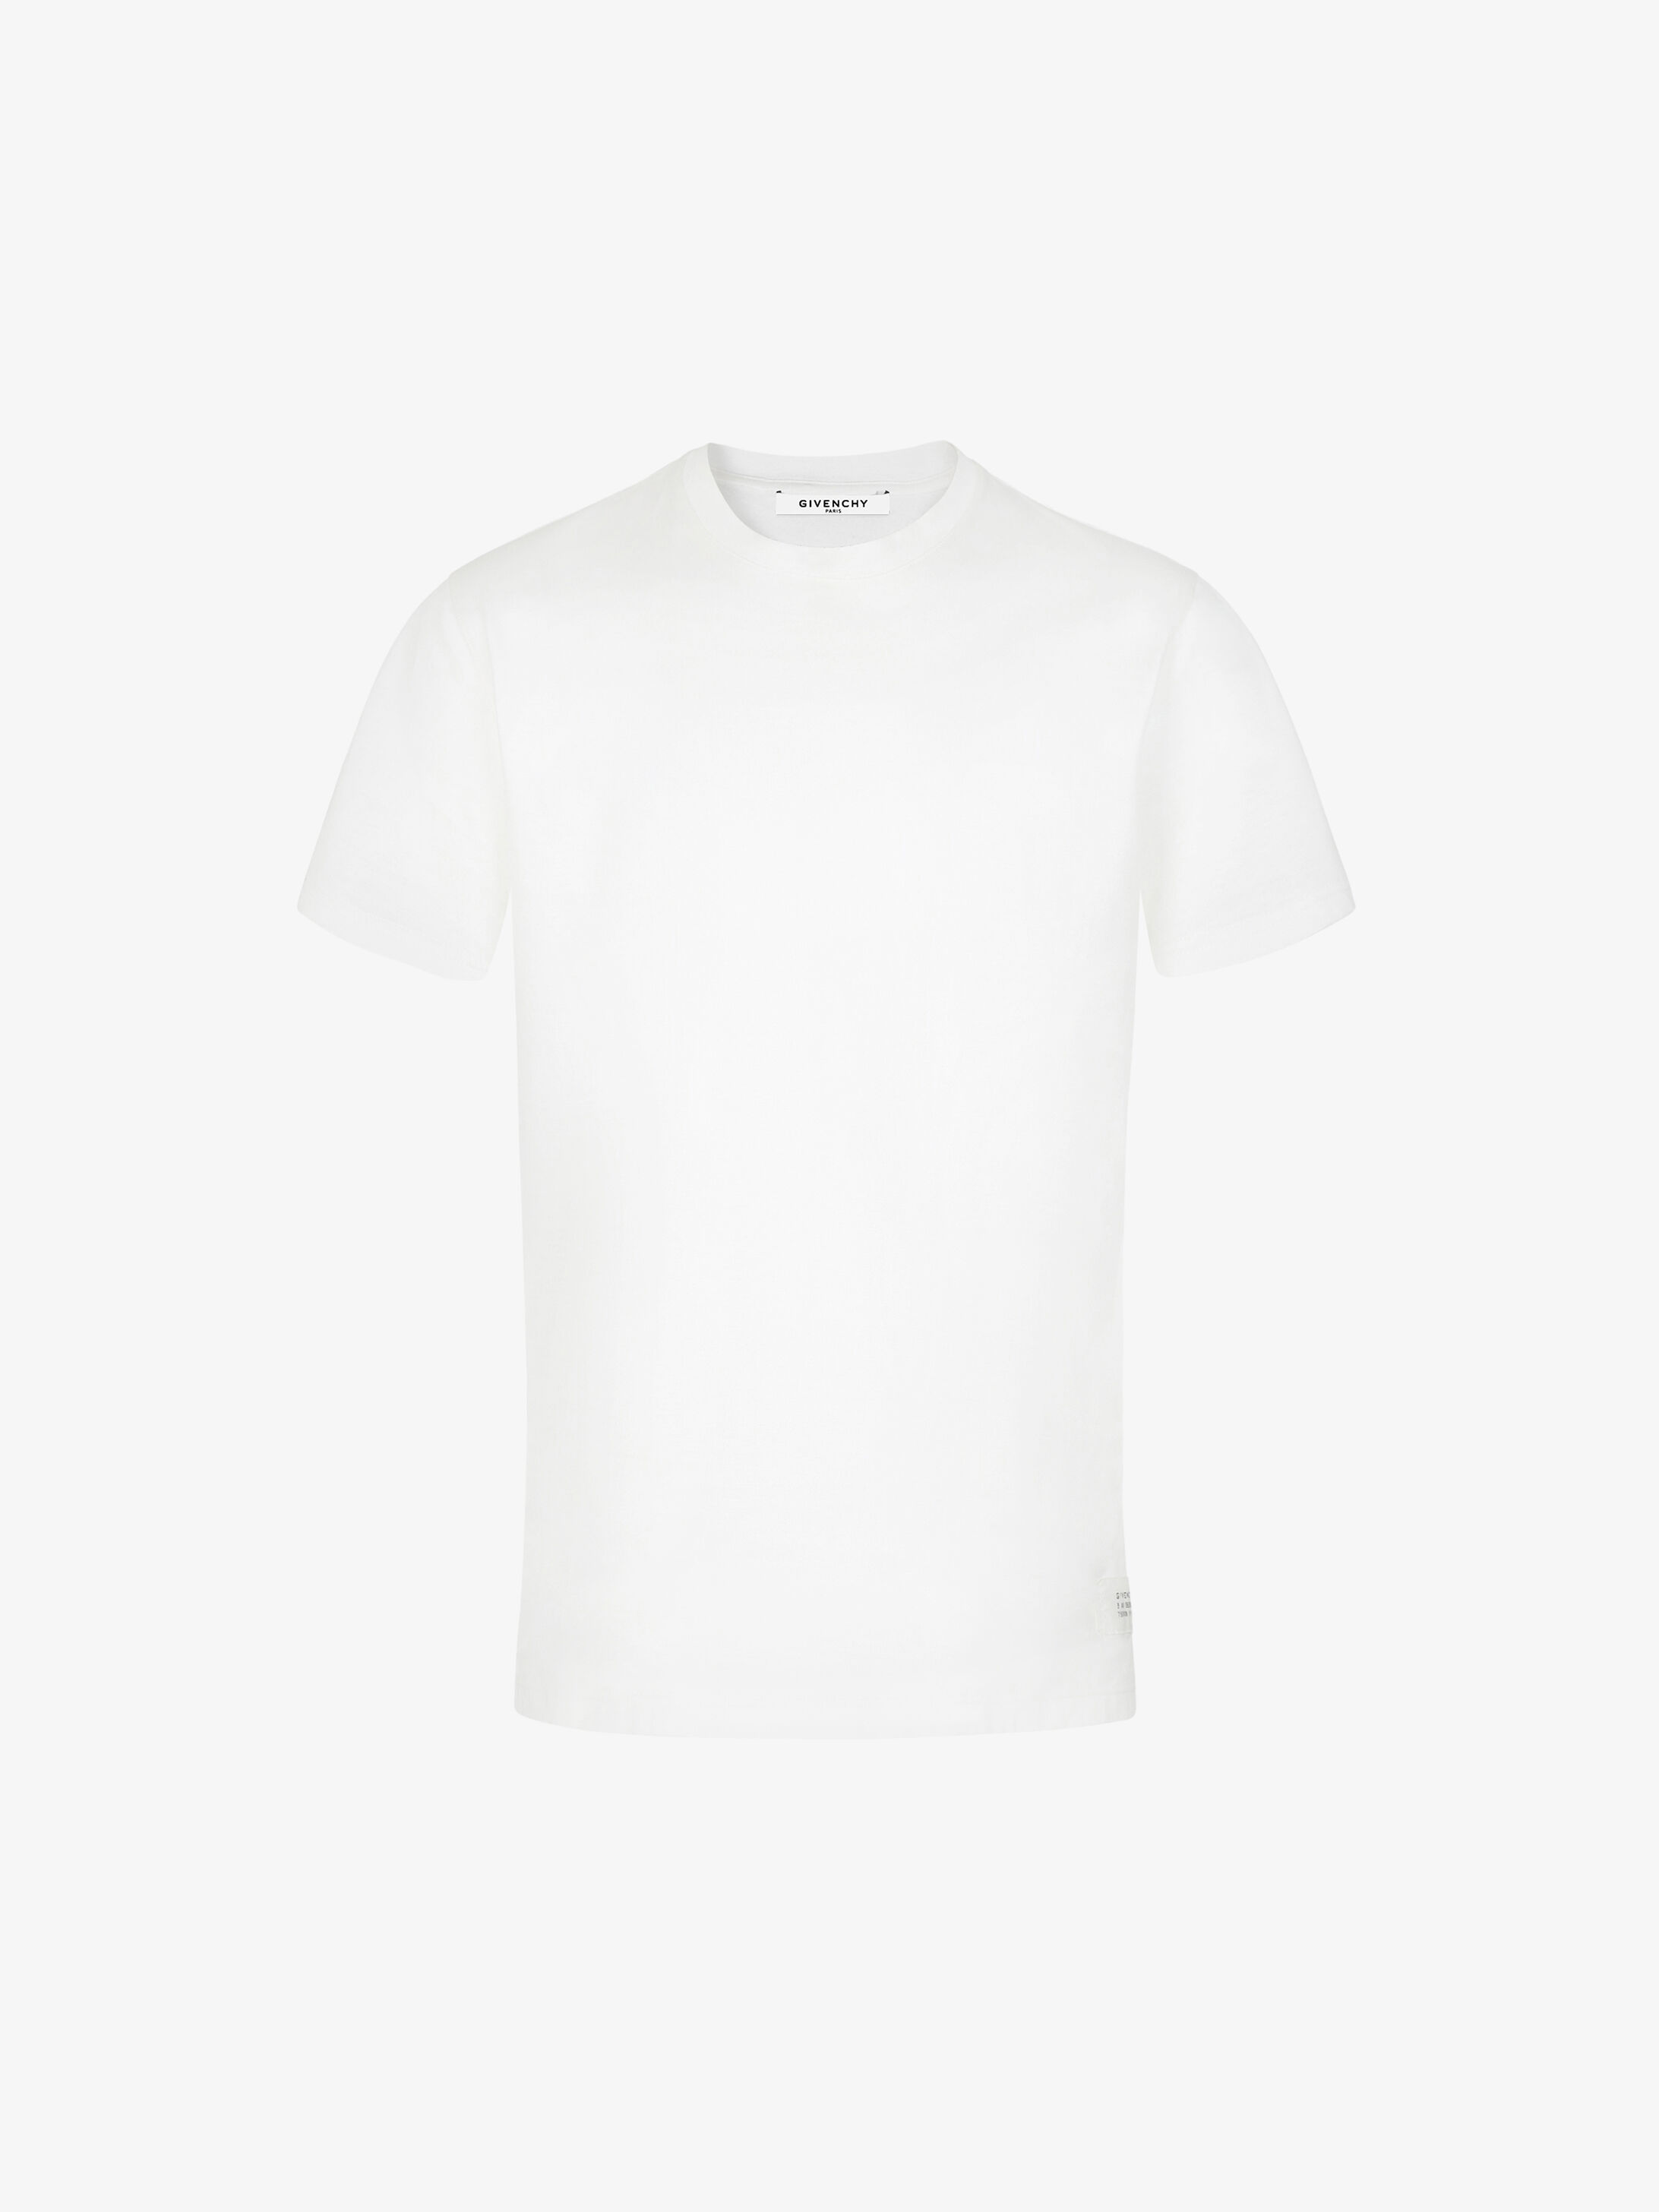 dd9b55a776a8 Men s T-Shirts collection by Givenchy.